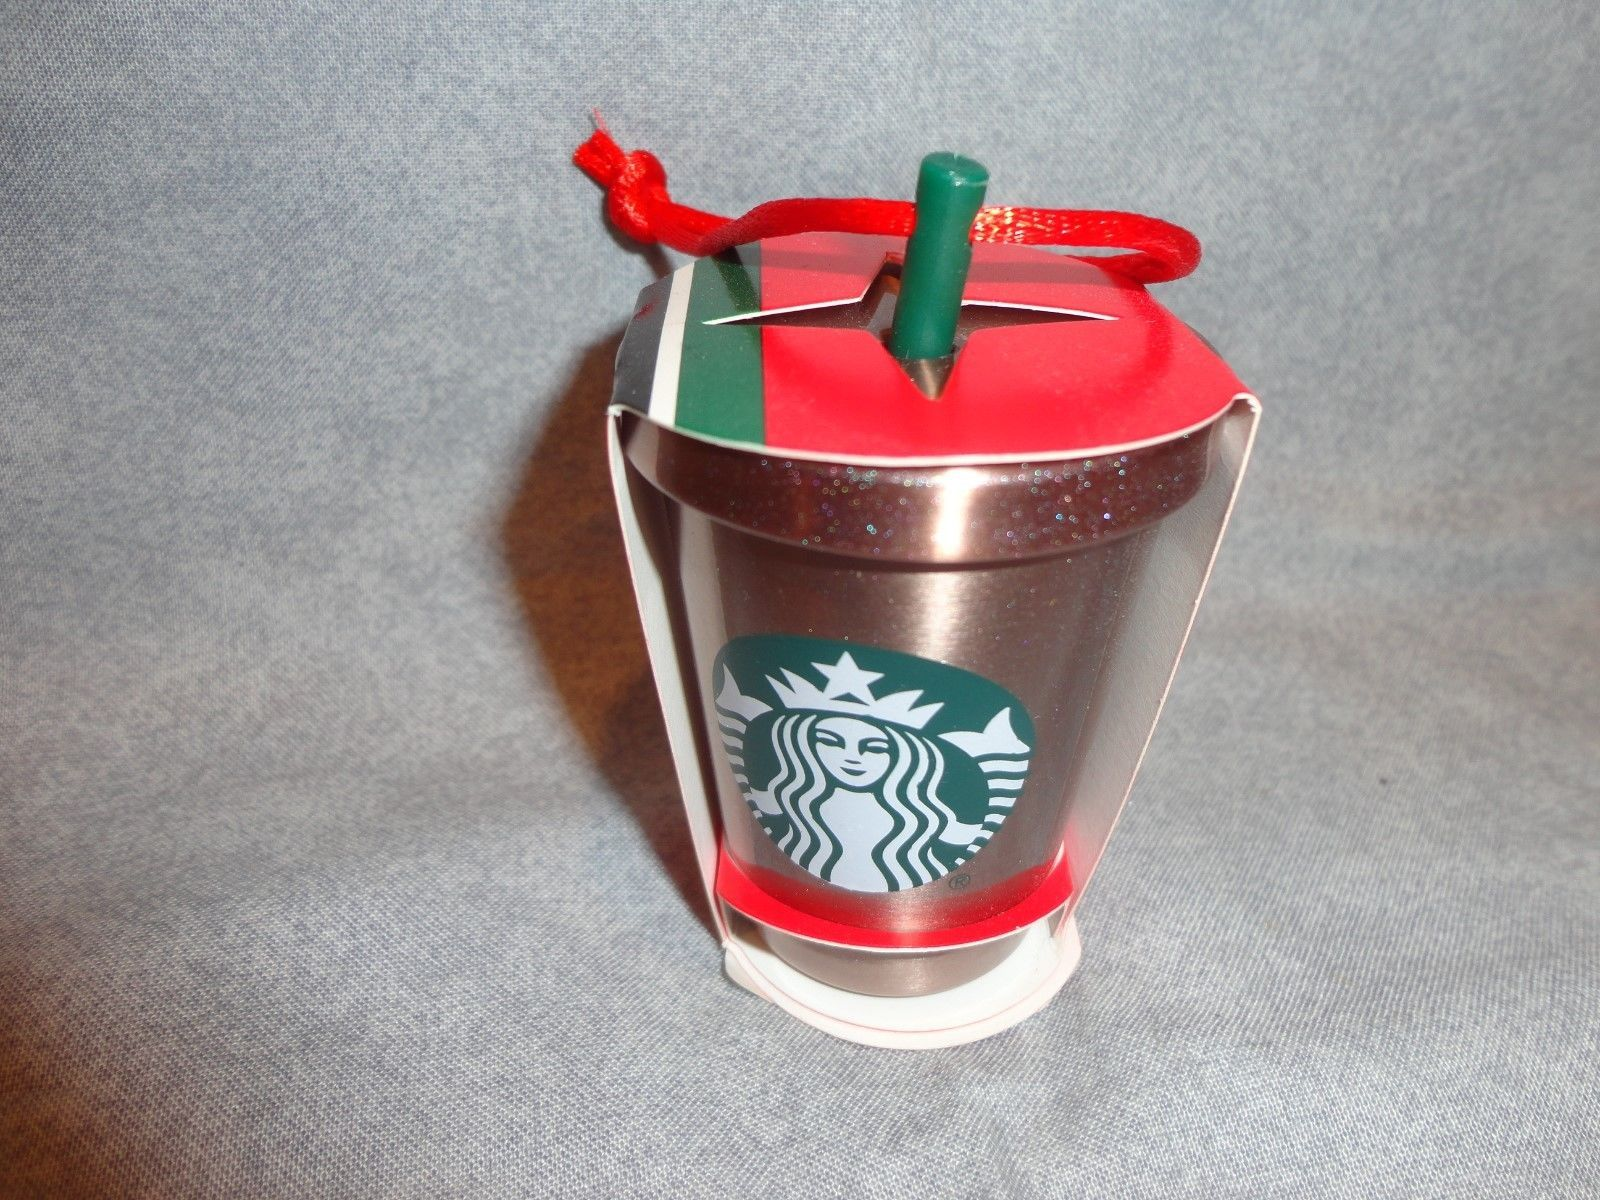 STARBUCKS 2018 STAINLESS STEEL COLD CUP WITH STRAW ORNAMENT